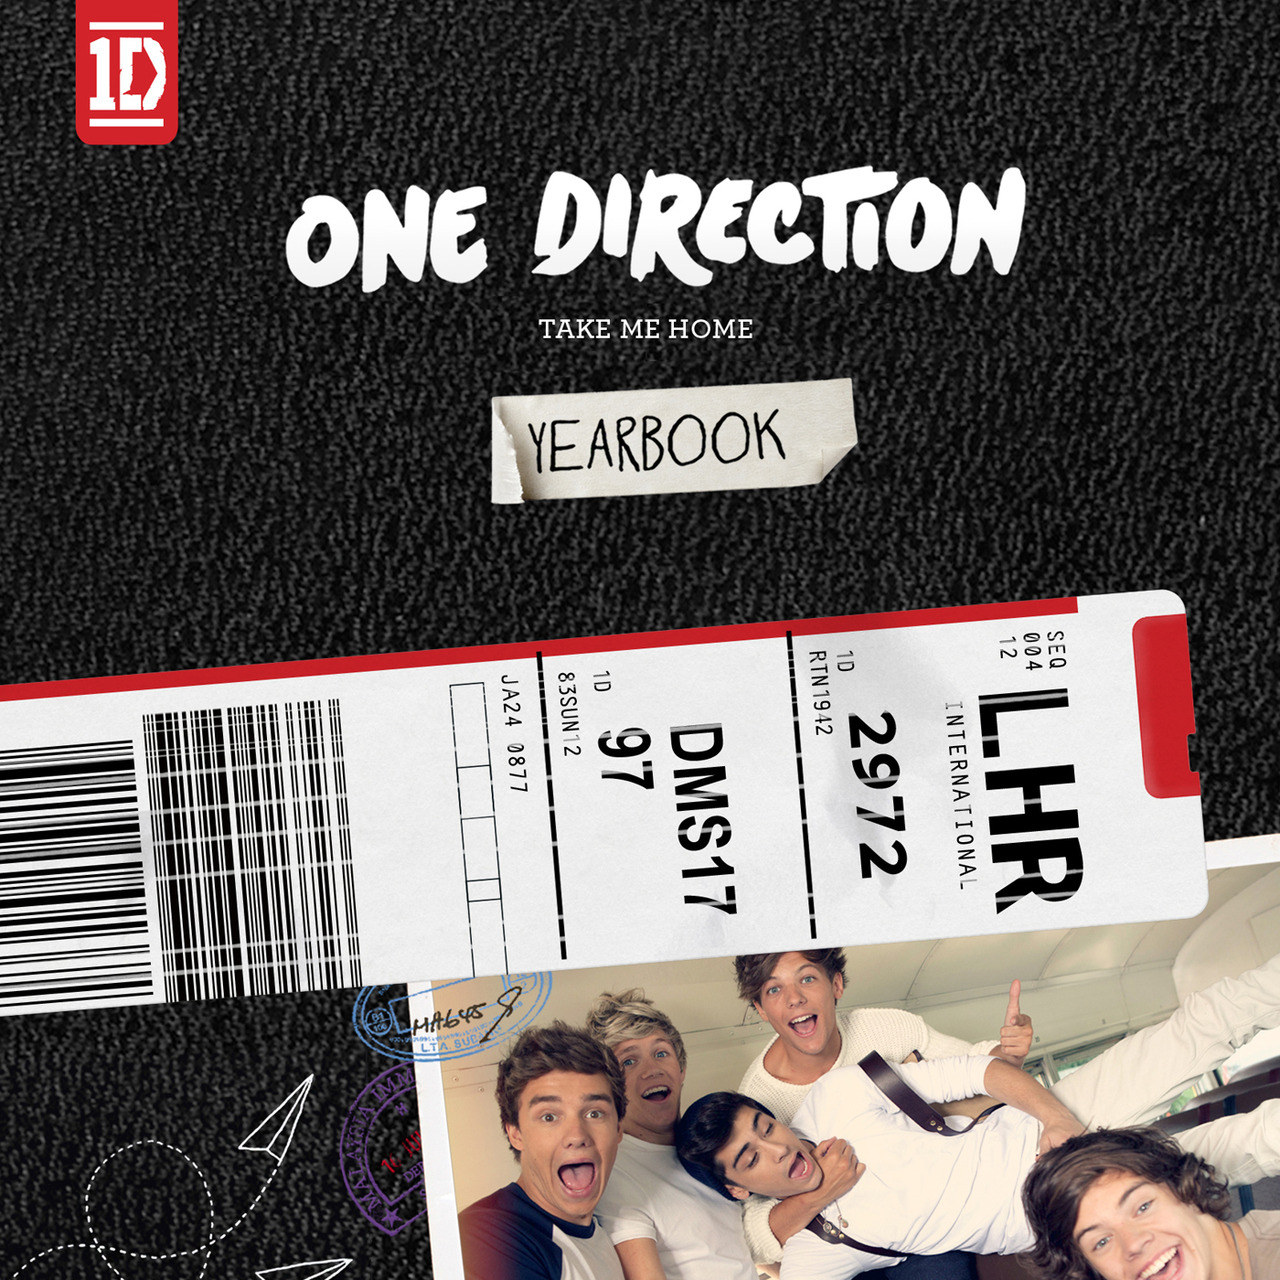 http://1.bp.blogspot.com/-jyCH98r7kiI/UD-xJHvPCXI/AAAAAAAAE5E/onGPqcrRKfM/s1600/one+direction+take+me+home+yearbook.jpg